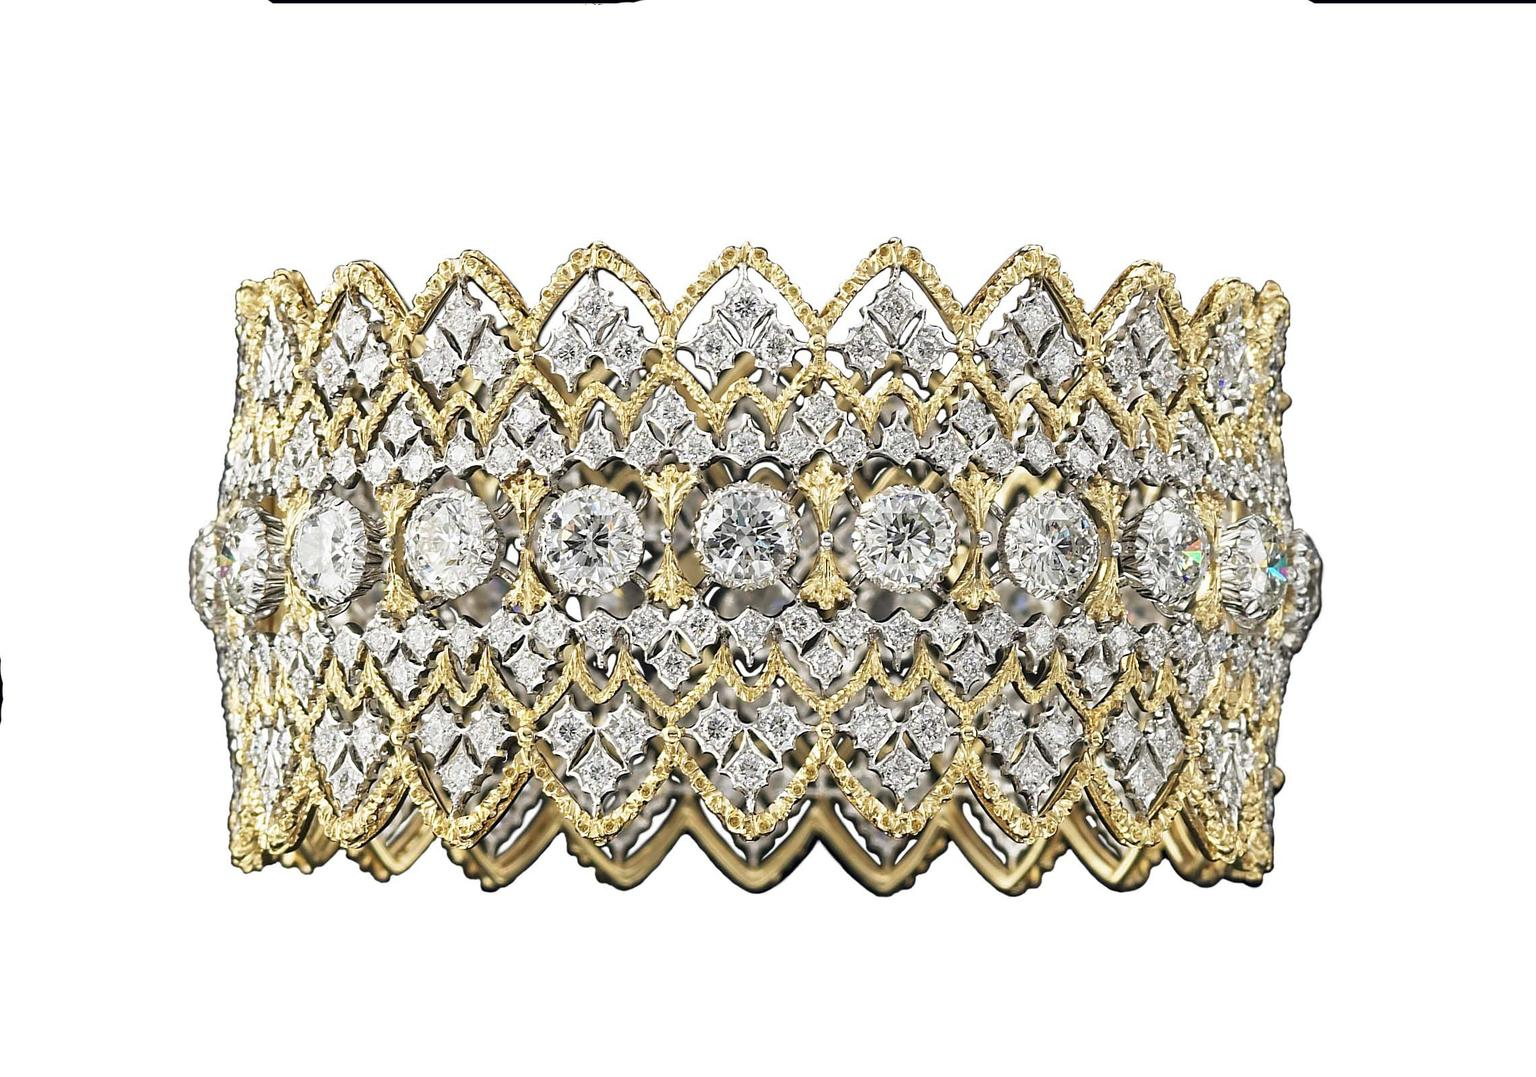 Buccellati gold lace-effect cuff bracelet with diamonds.